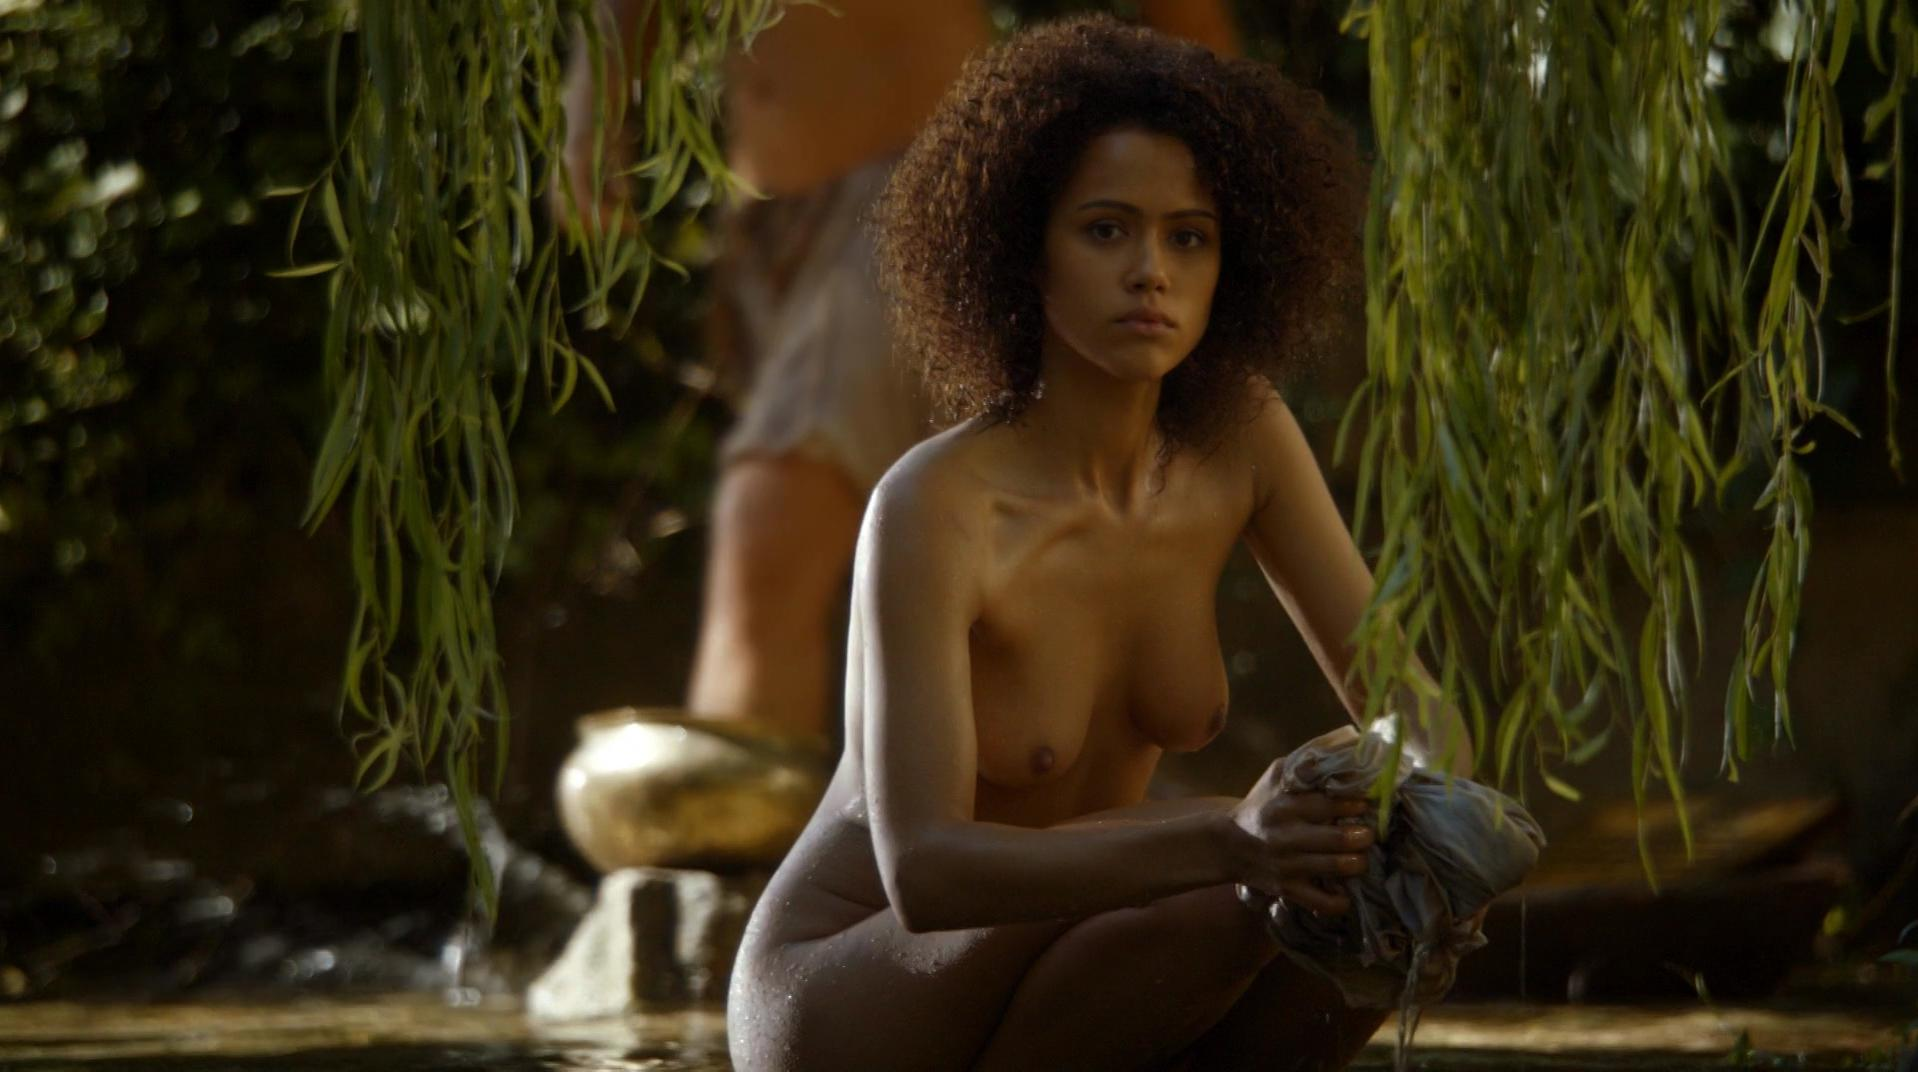 Nathalie Emmanuel nude - Game of Thrones s04e08 (2014)